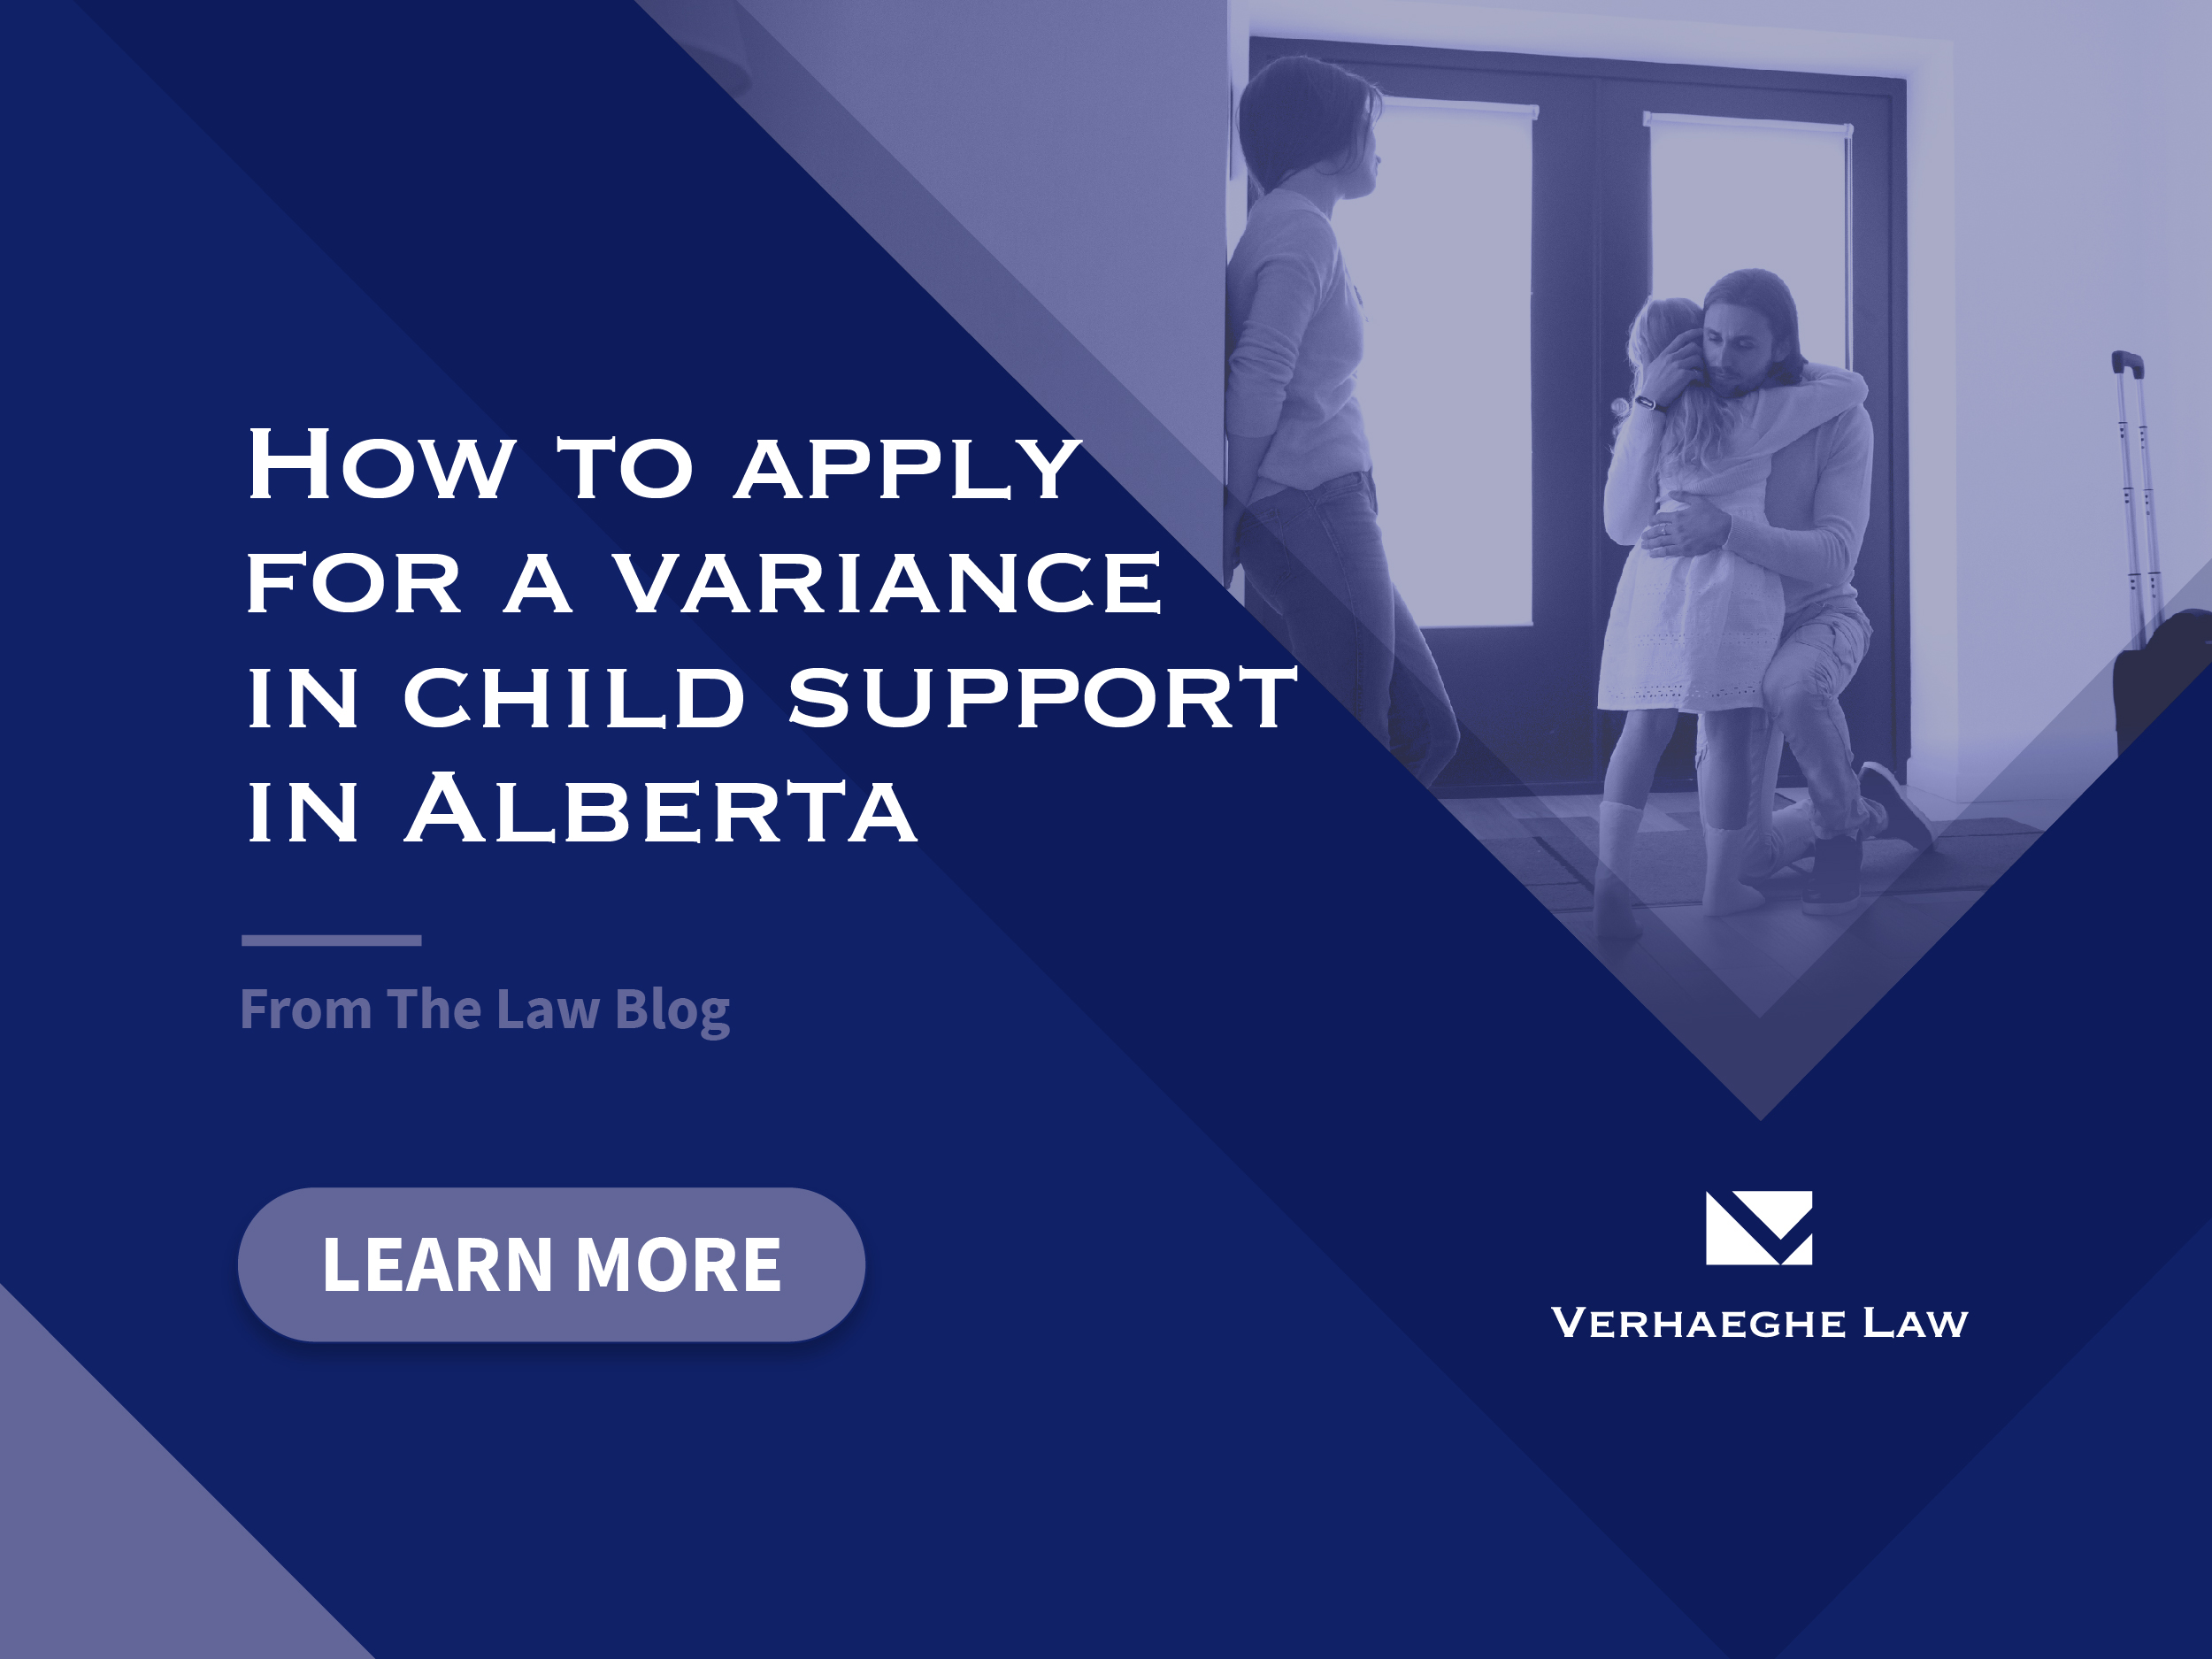 How To Apply For A Variance In Child Support In Alberta